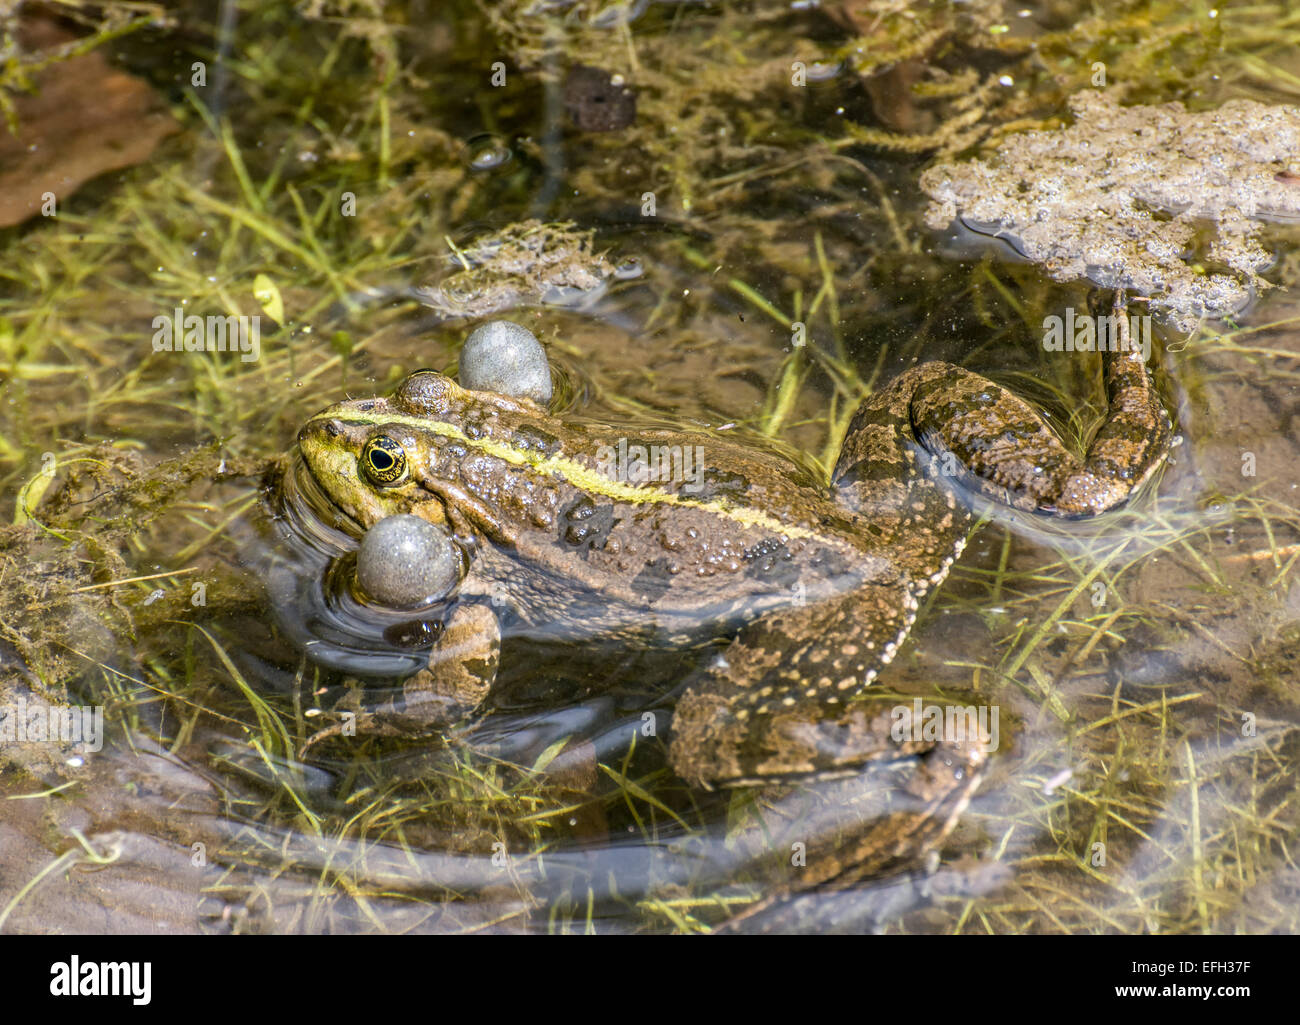 Croaking frog with filled vocal sacs - Stock Image